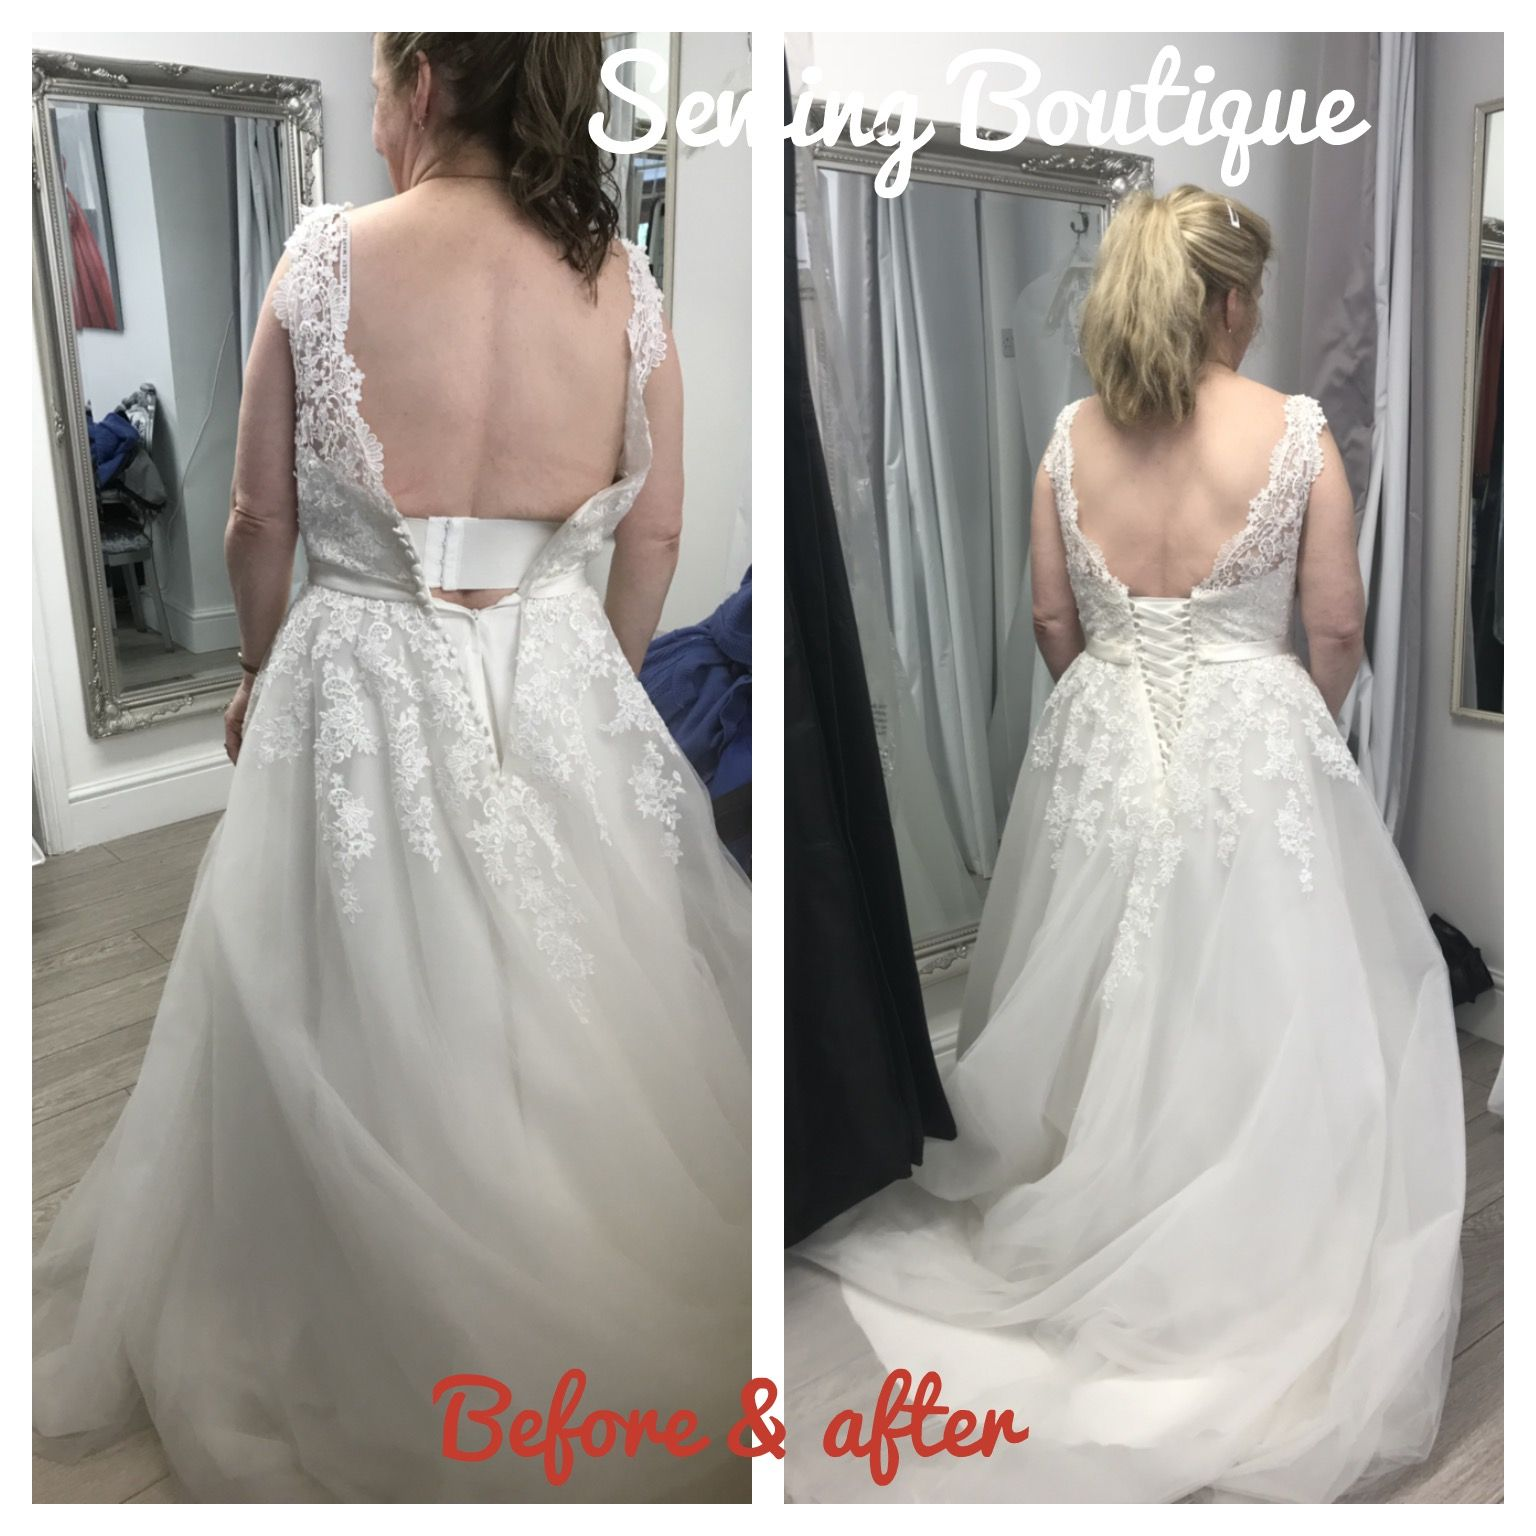 Wedding Gown Alterations Modern Trends For Alterations On Wedding Dress Cost Wedding In 2020 Wedding Gown Alterations Wedding Dress Cost Wedding Dress Alterations